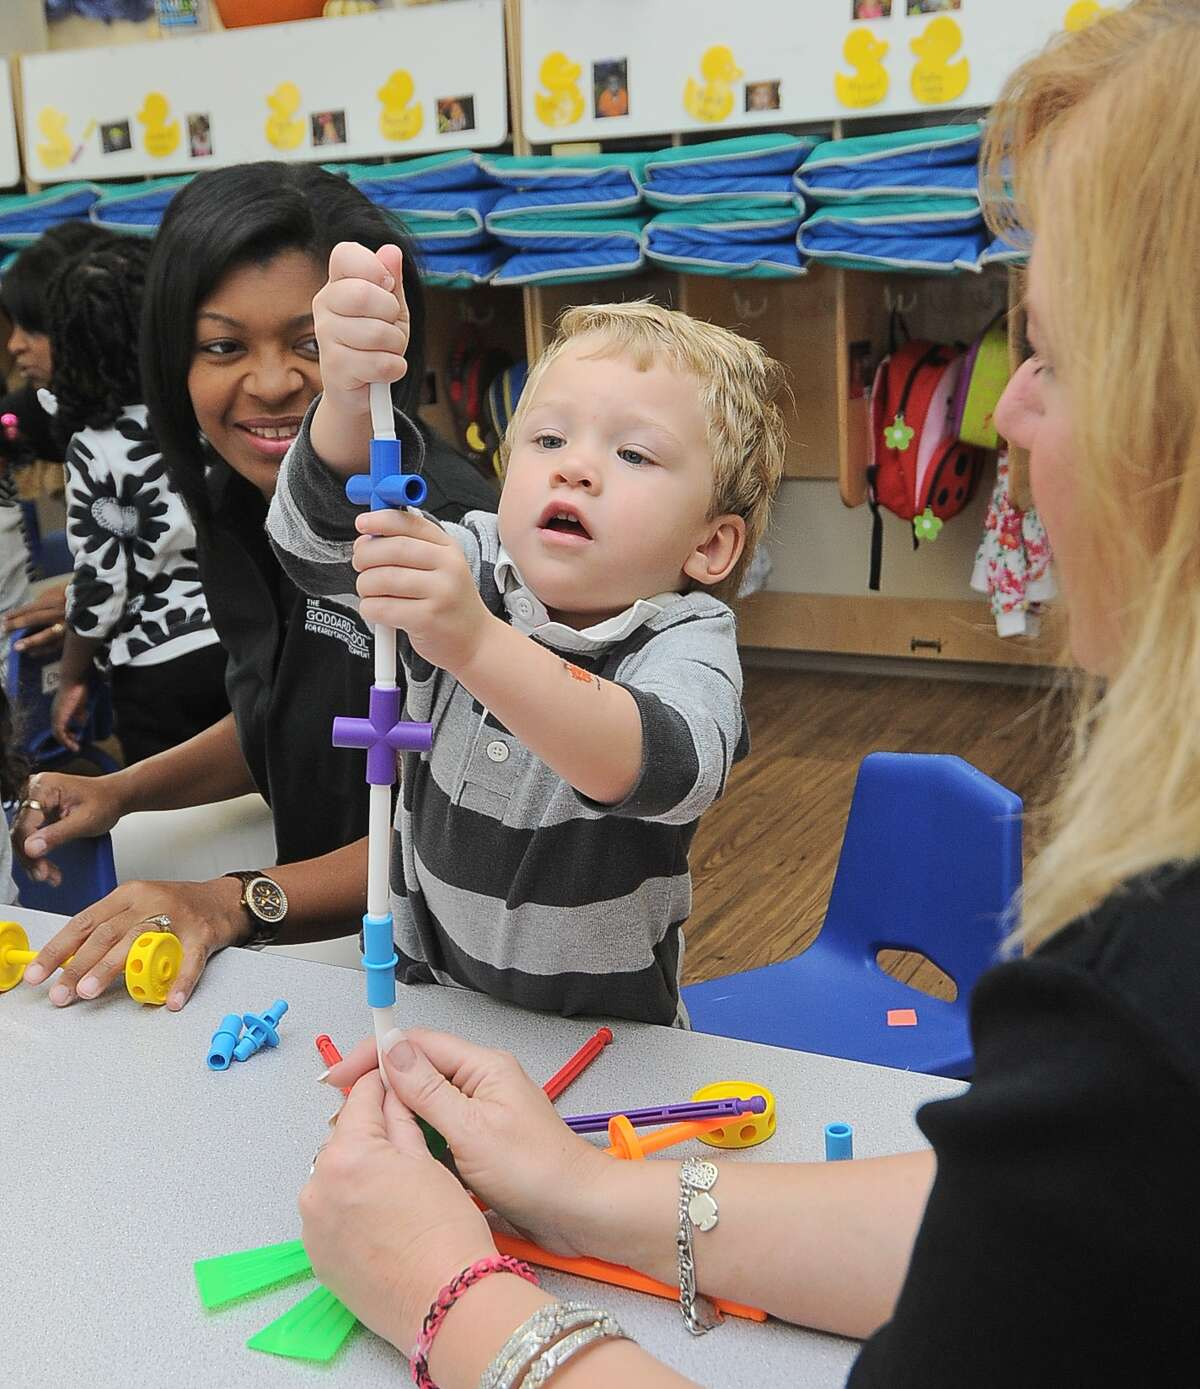 At The Goddard School in Cypress, Melannie Lewis (cq) watches as Brendan Seda Smith (cq) plays with a lego-like toy with Cathy Robinson at right Friday 11/01/13.